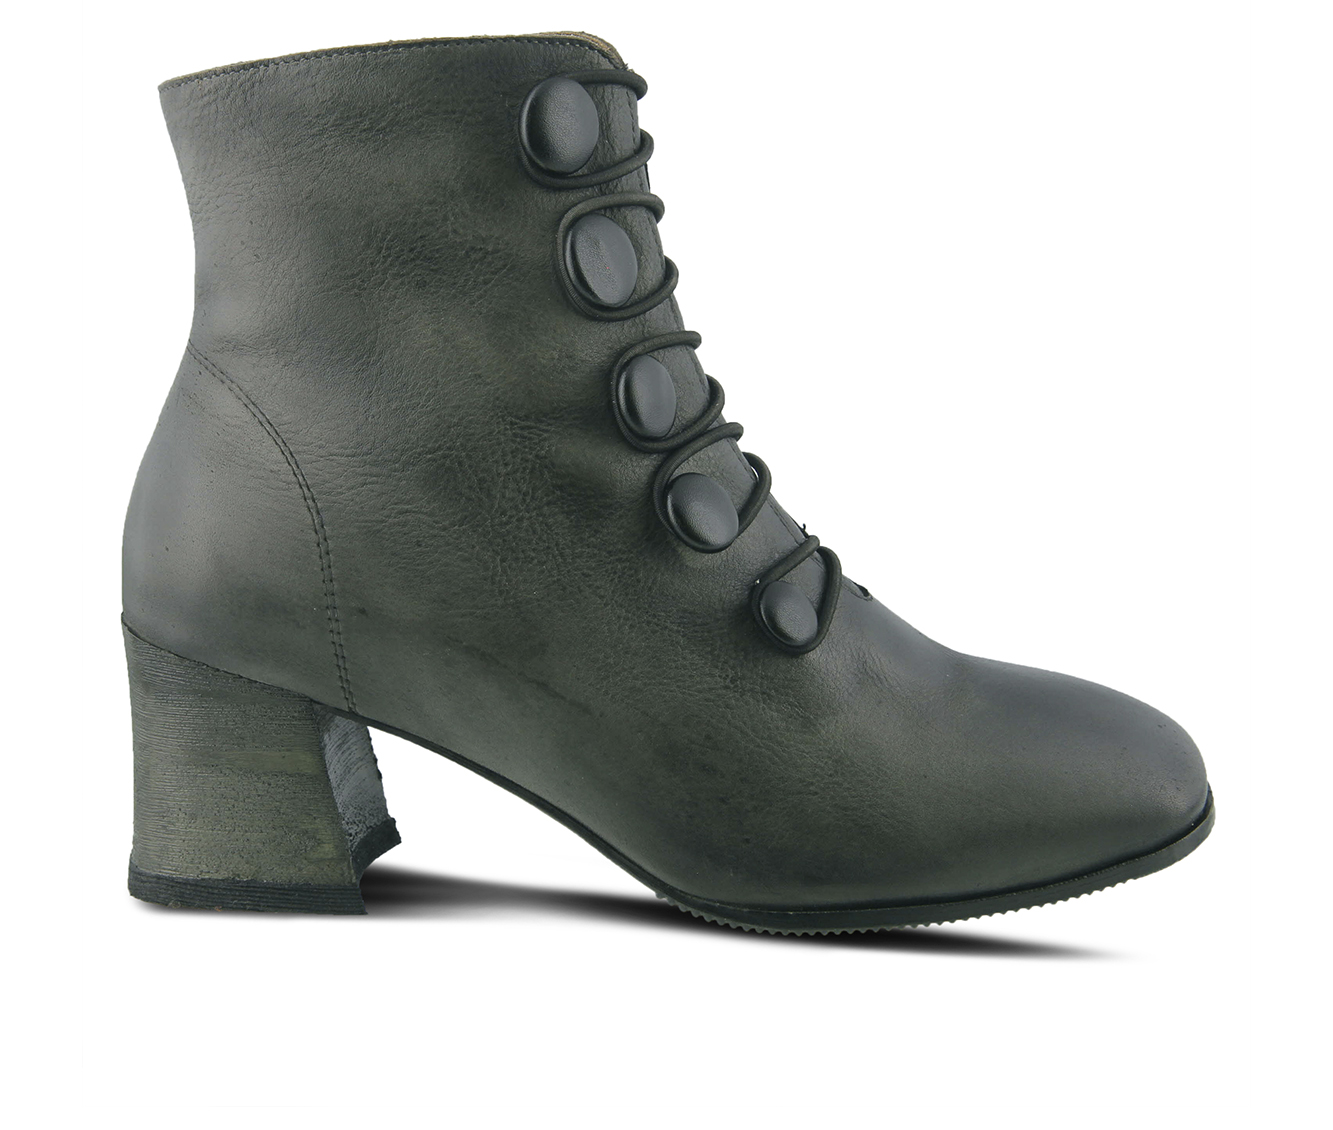 L'Artiste Mitzie Women's Boots (Gray Leather)